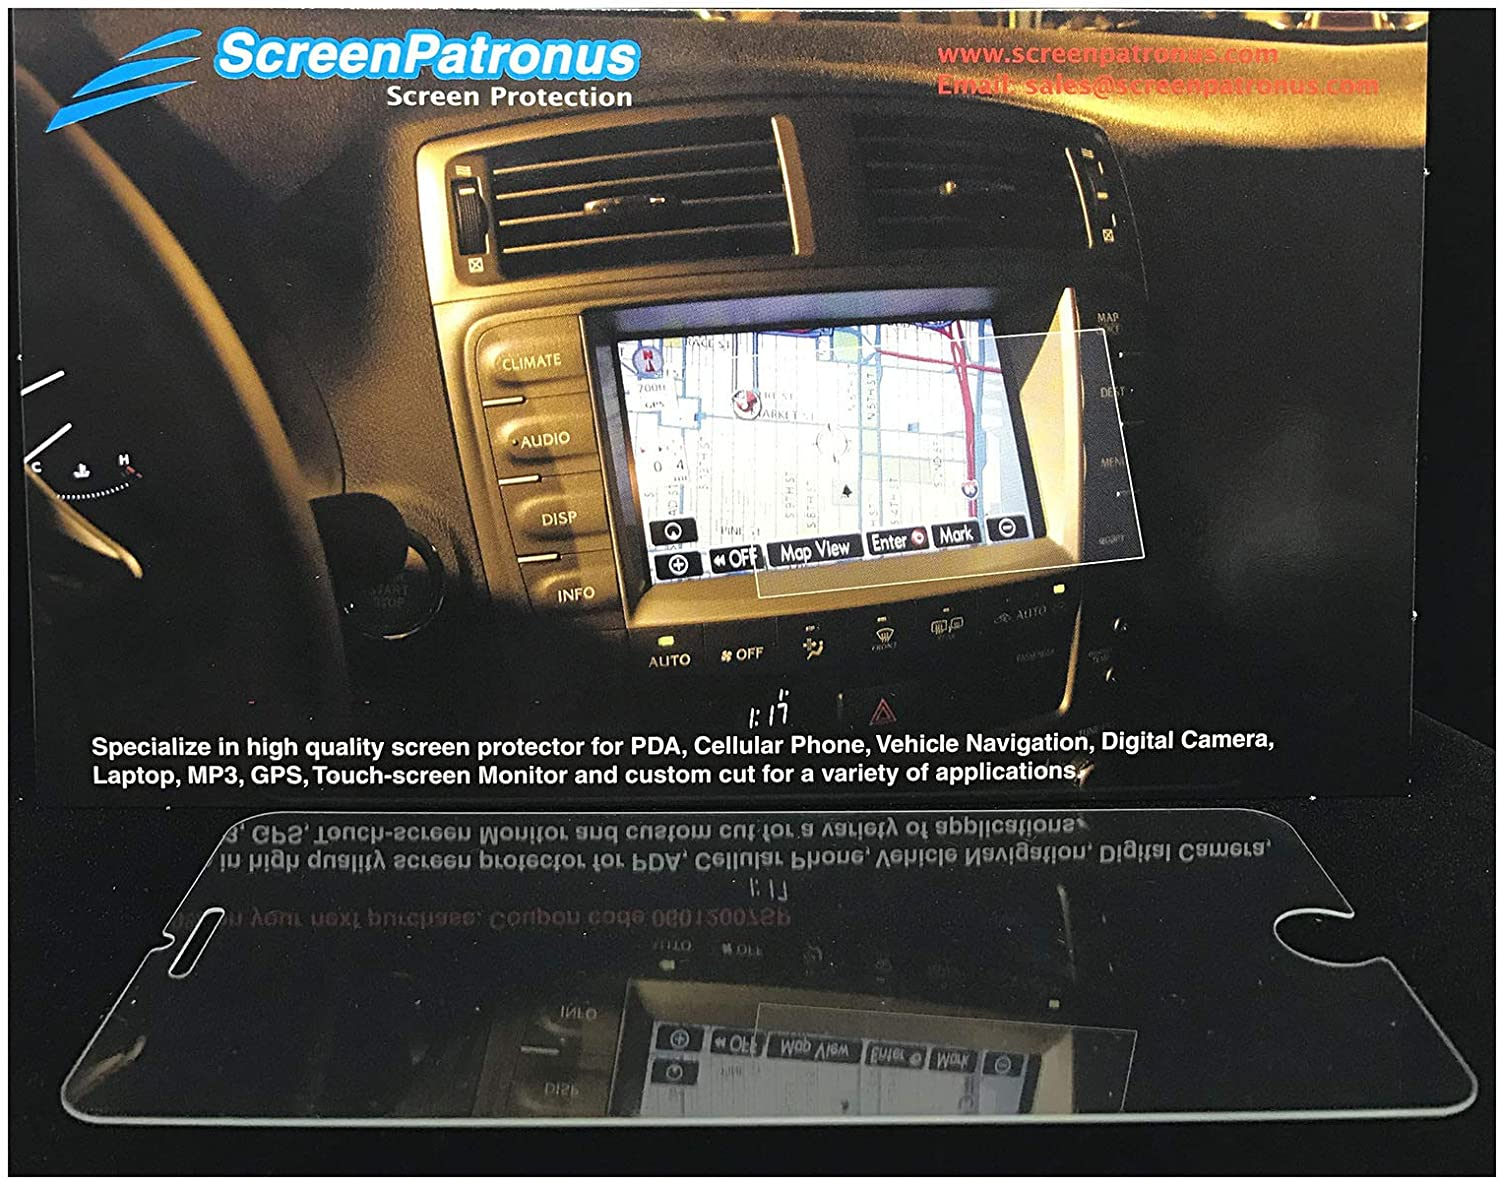 ScreenPatronus - Compatible with RCA RocBox MP3 Crystal Clear Screen Protector (Lifetime Replacement Warranty)